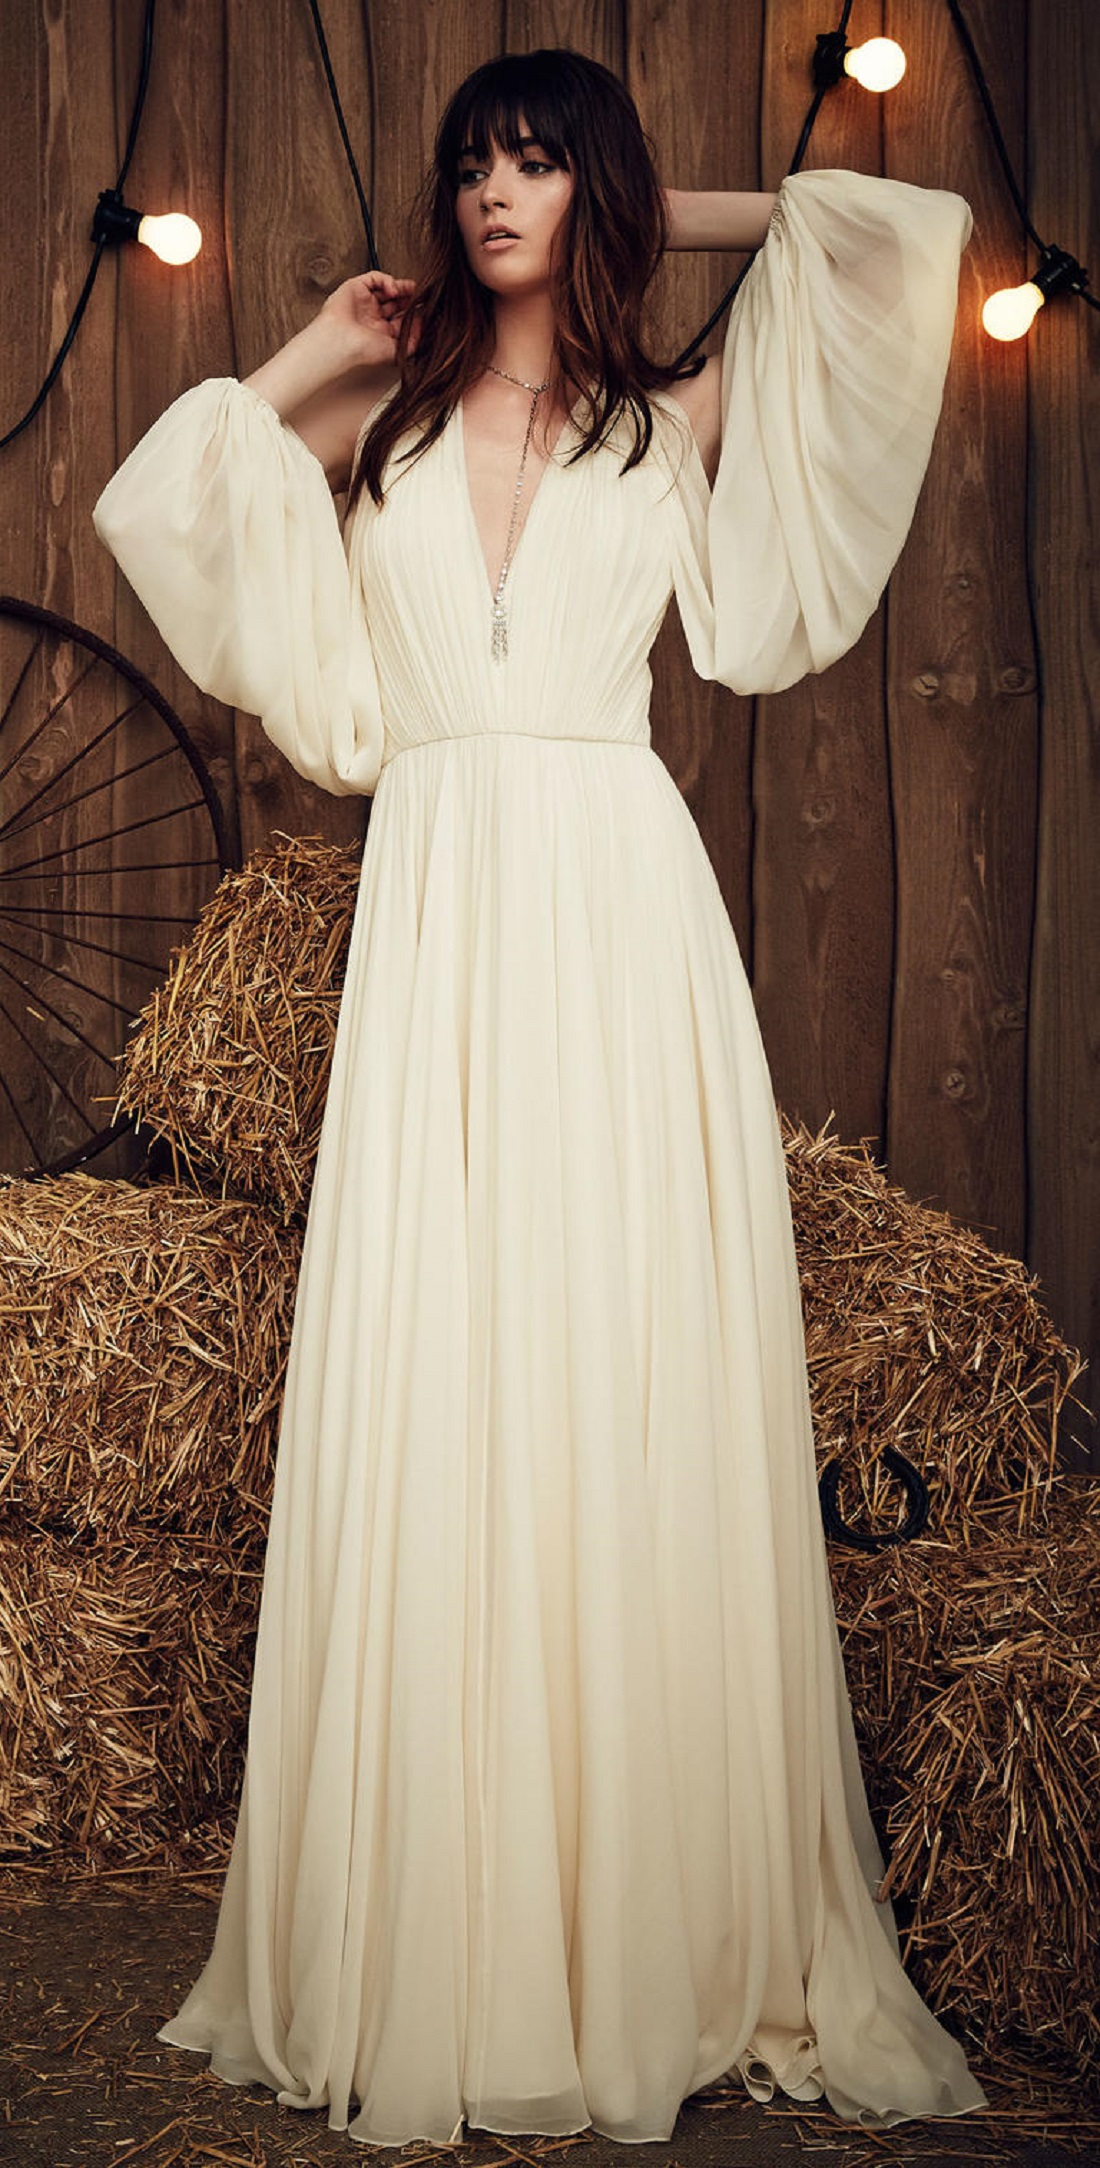 @pfairytale Perfect Dresses for a Fall Ceremony